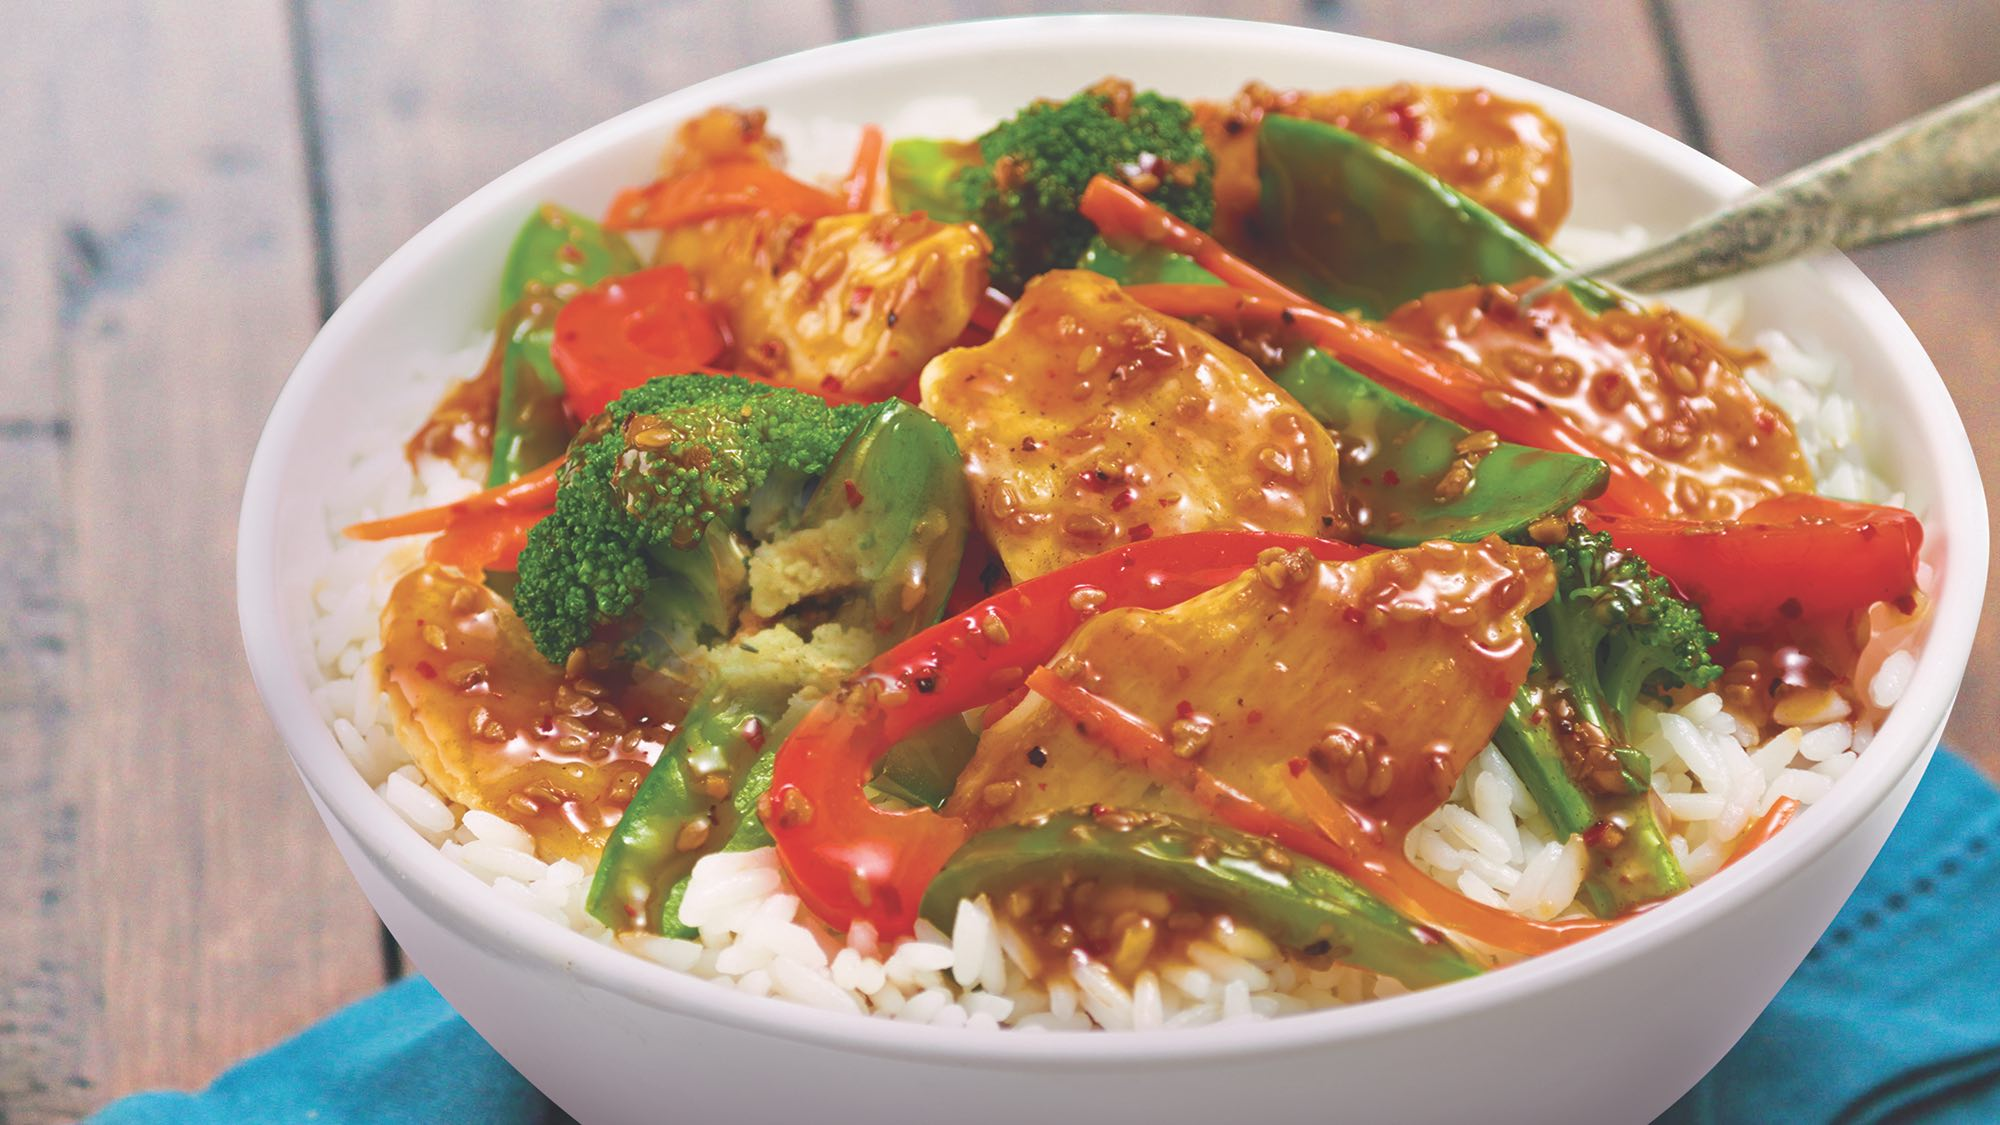 sesame-chicken-stir-fry.jpg